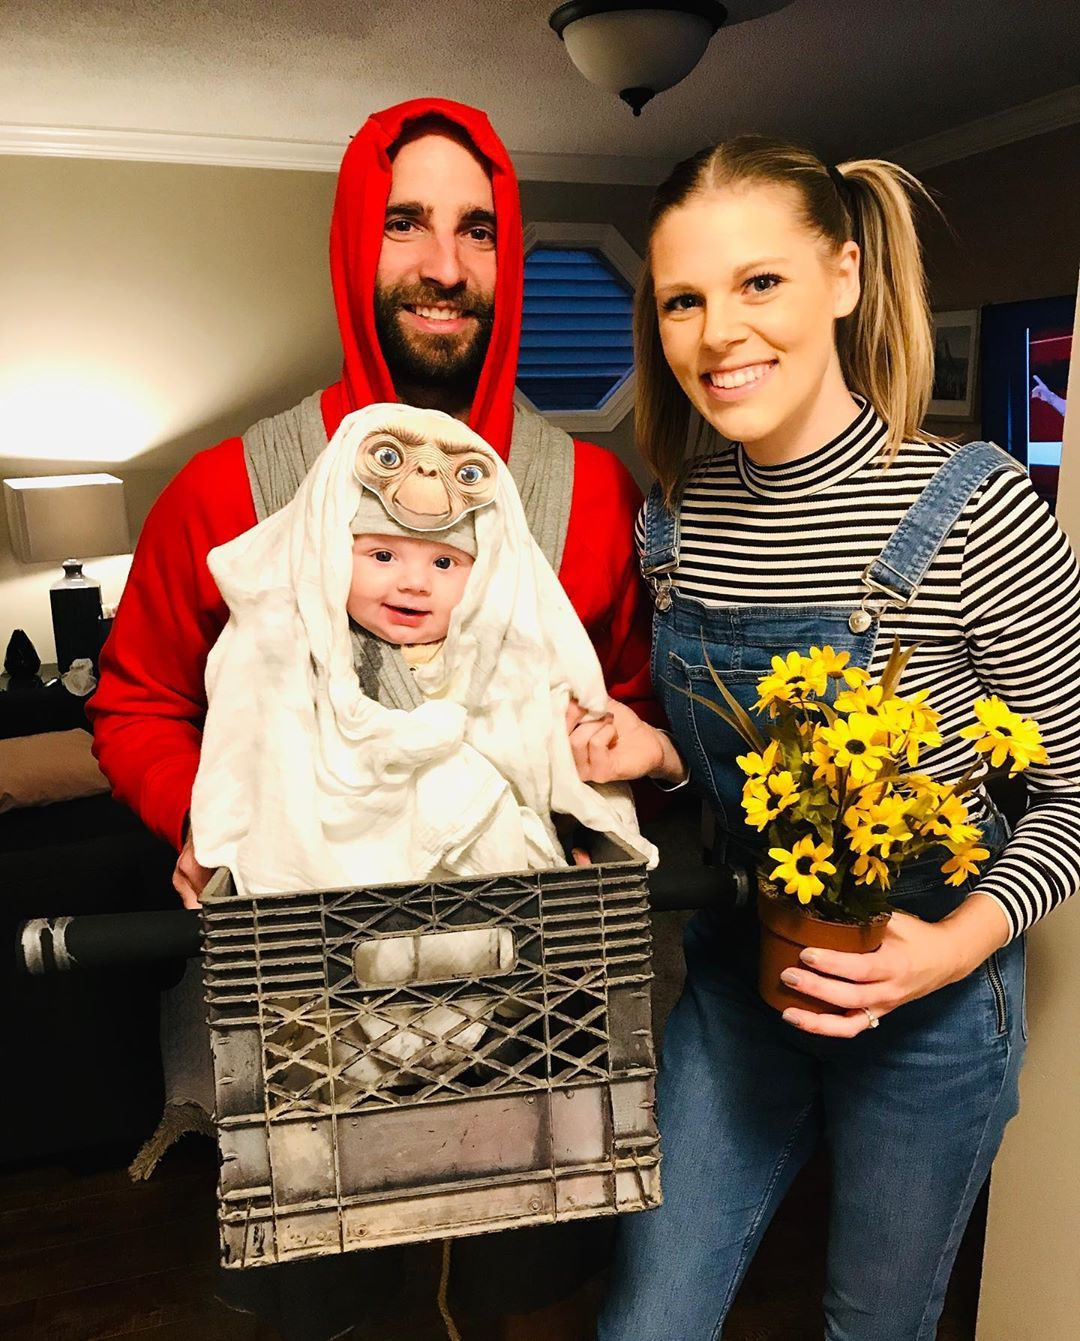 Baby as et wrapped in blanket family costumes first